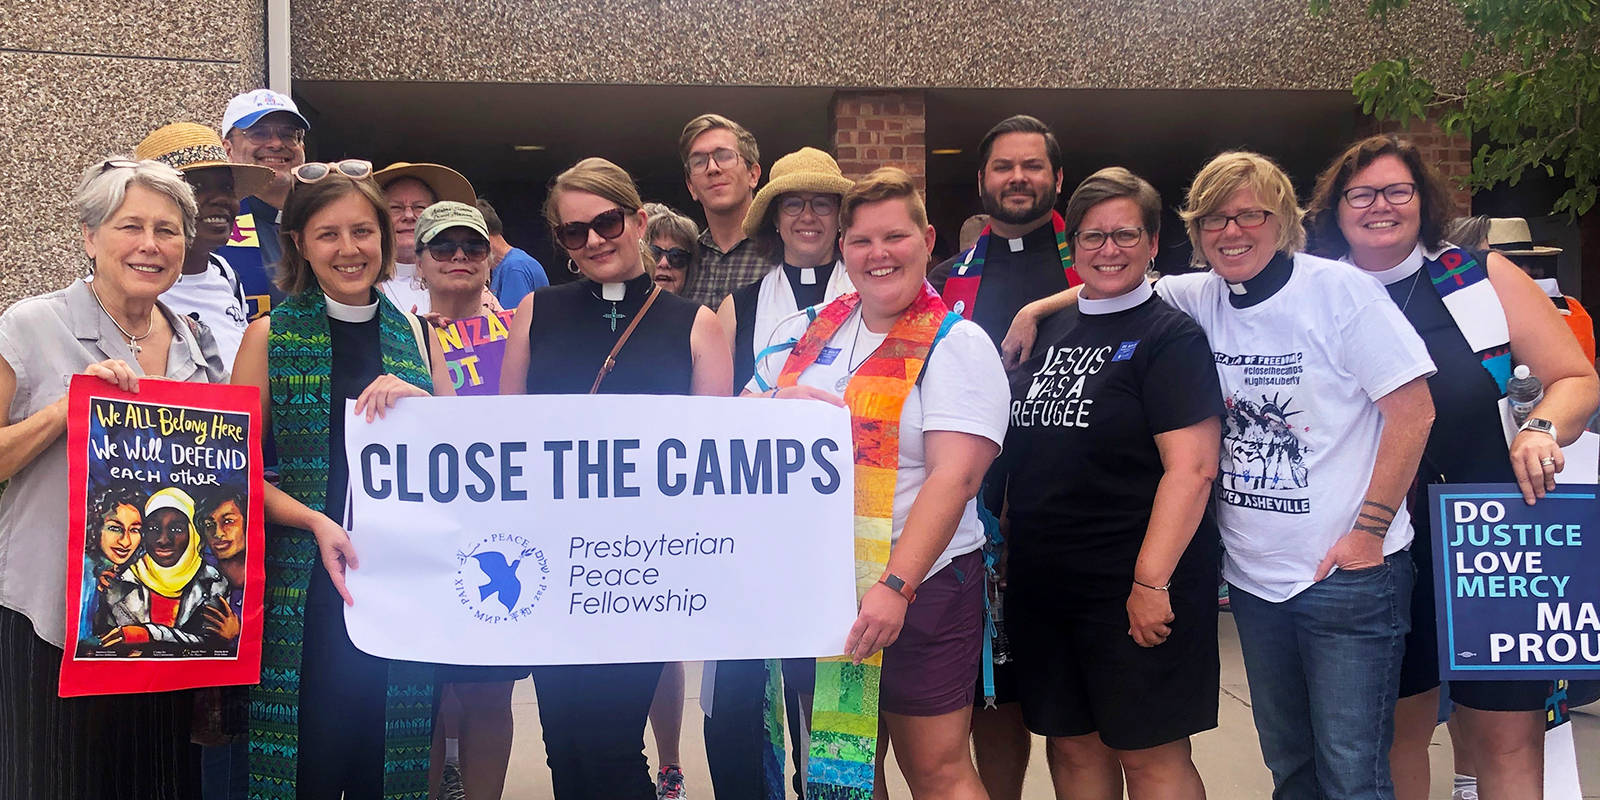 A delegation from Southside Presbyterian Church in Tucson, Arizona, took part in the Moral Monday demonstration outside of the U.S. Immigration and Custom Enforcement processing center in El Paso, Texas. Photo by the Reverend Alison Harrington.